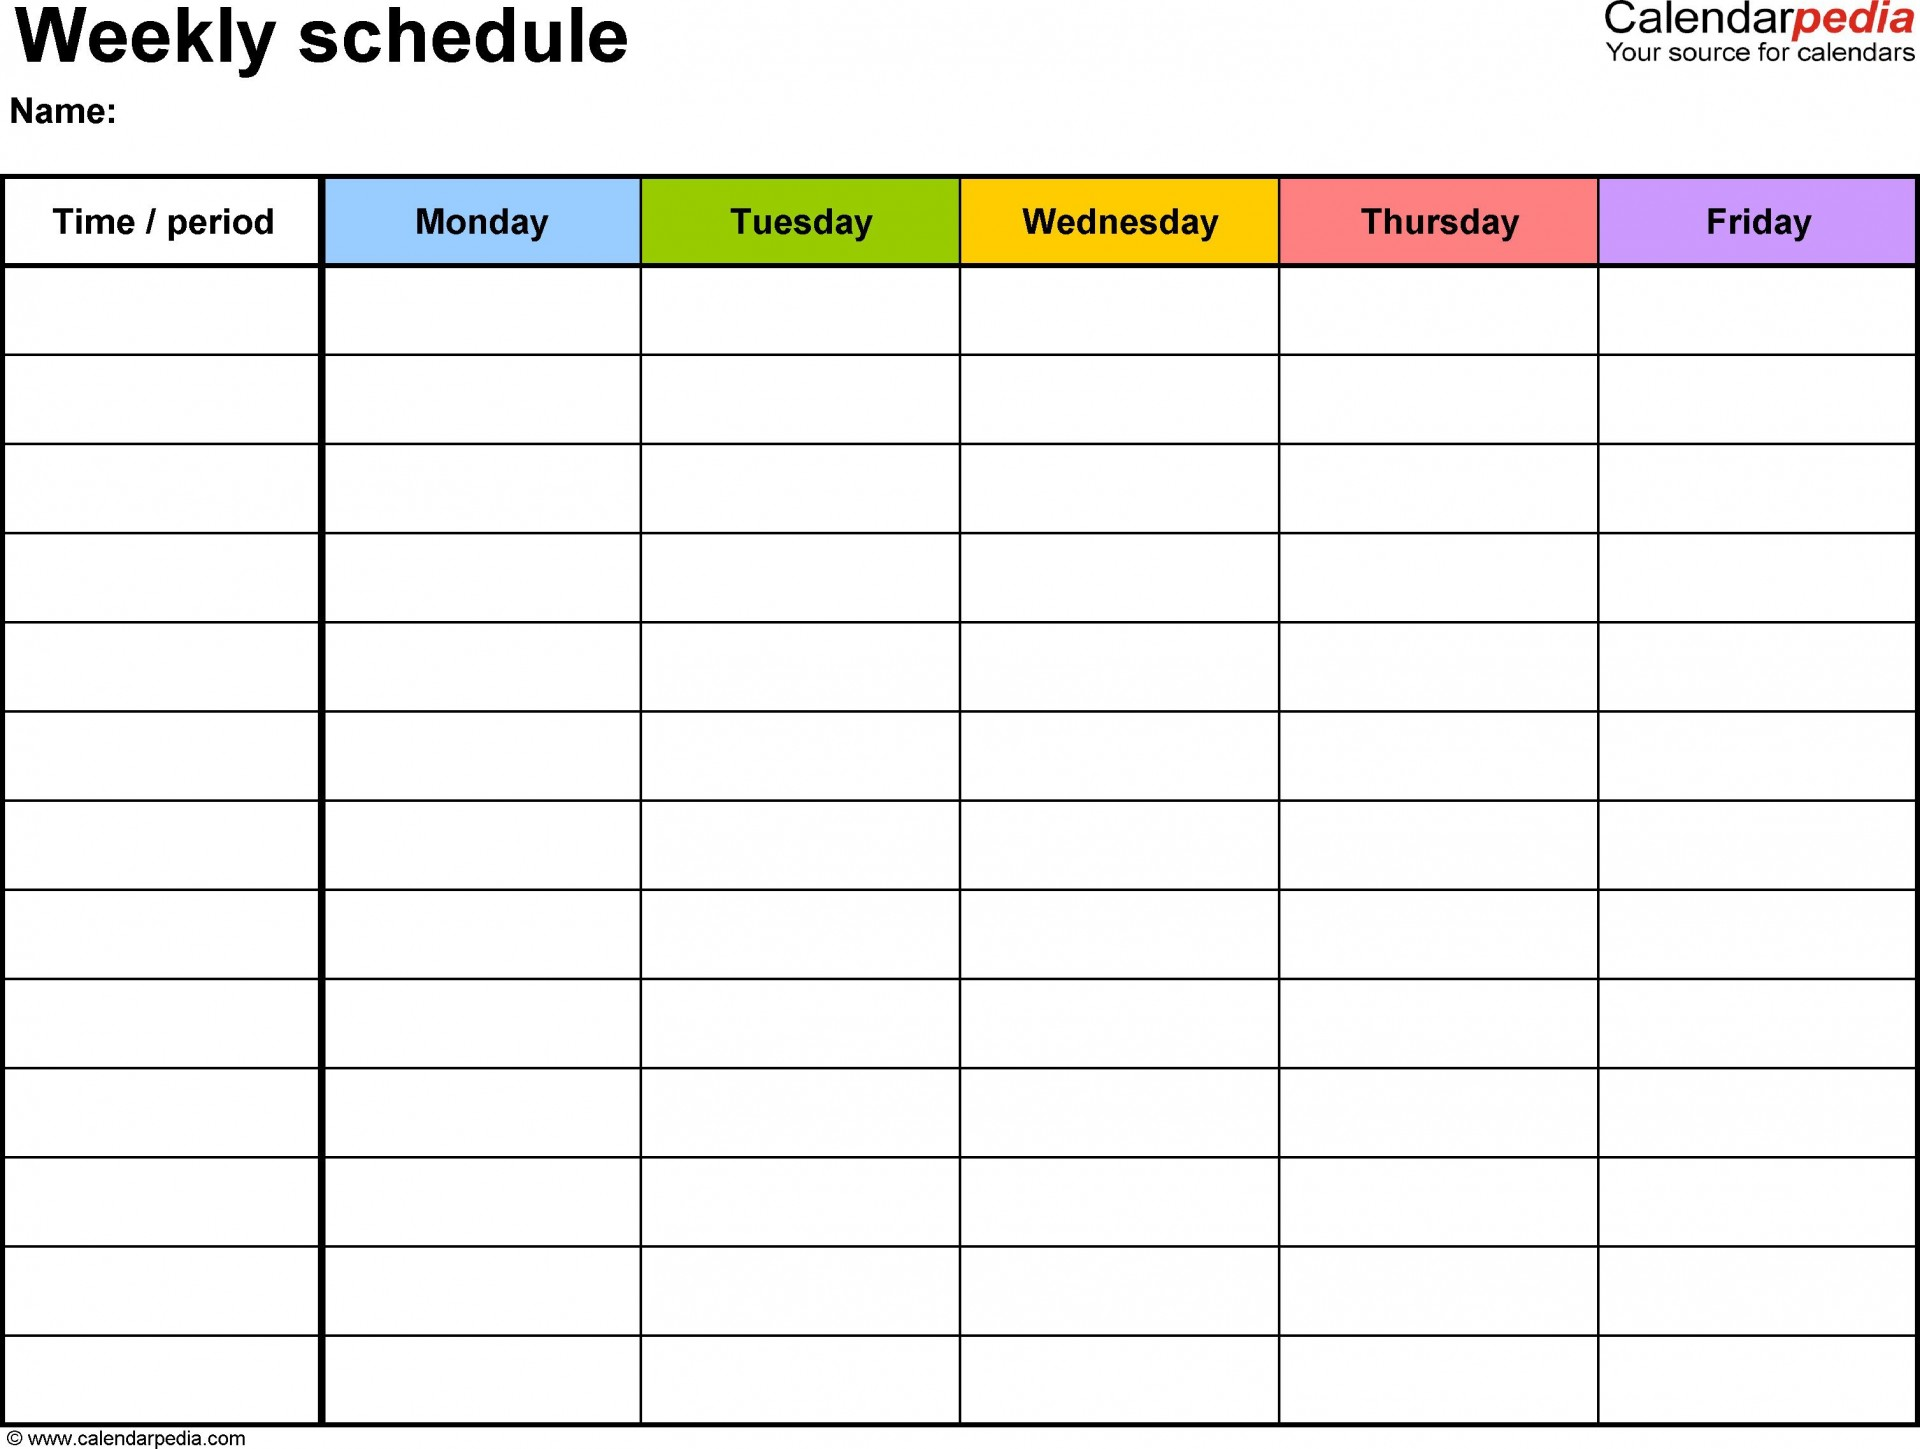 003 Amazing Weekly Schedule Template Pdf Photo  With Time Study Work1920